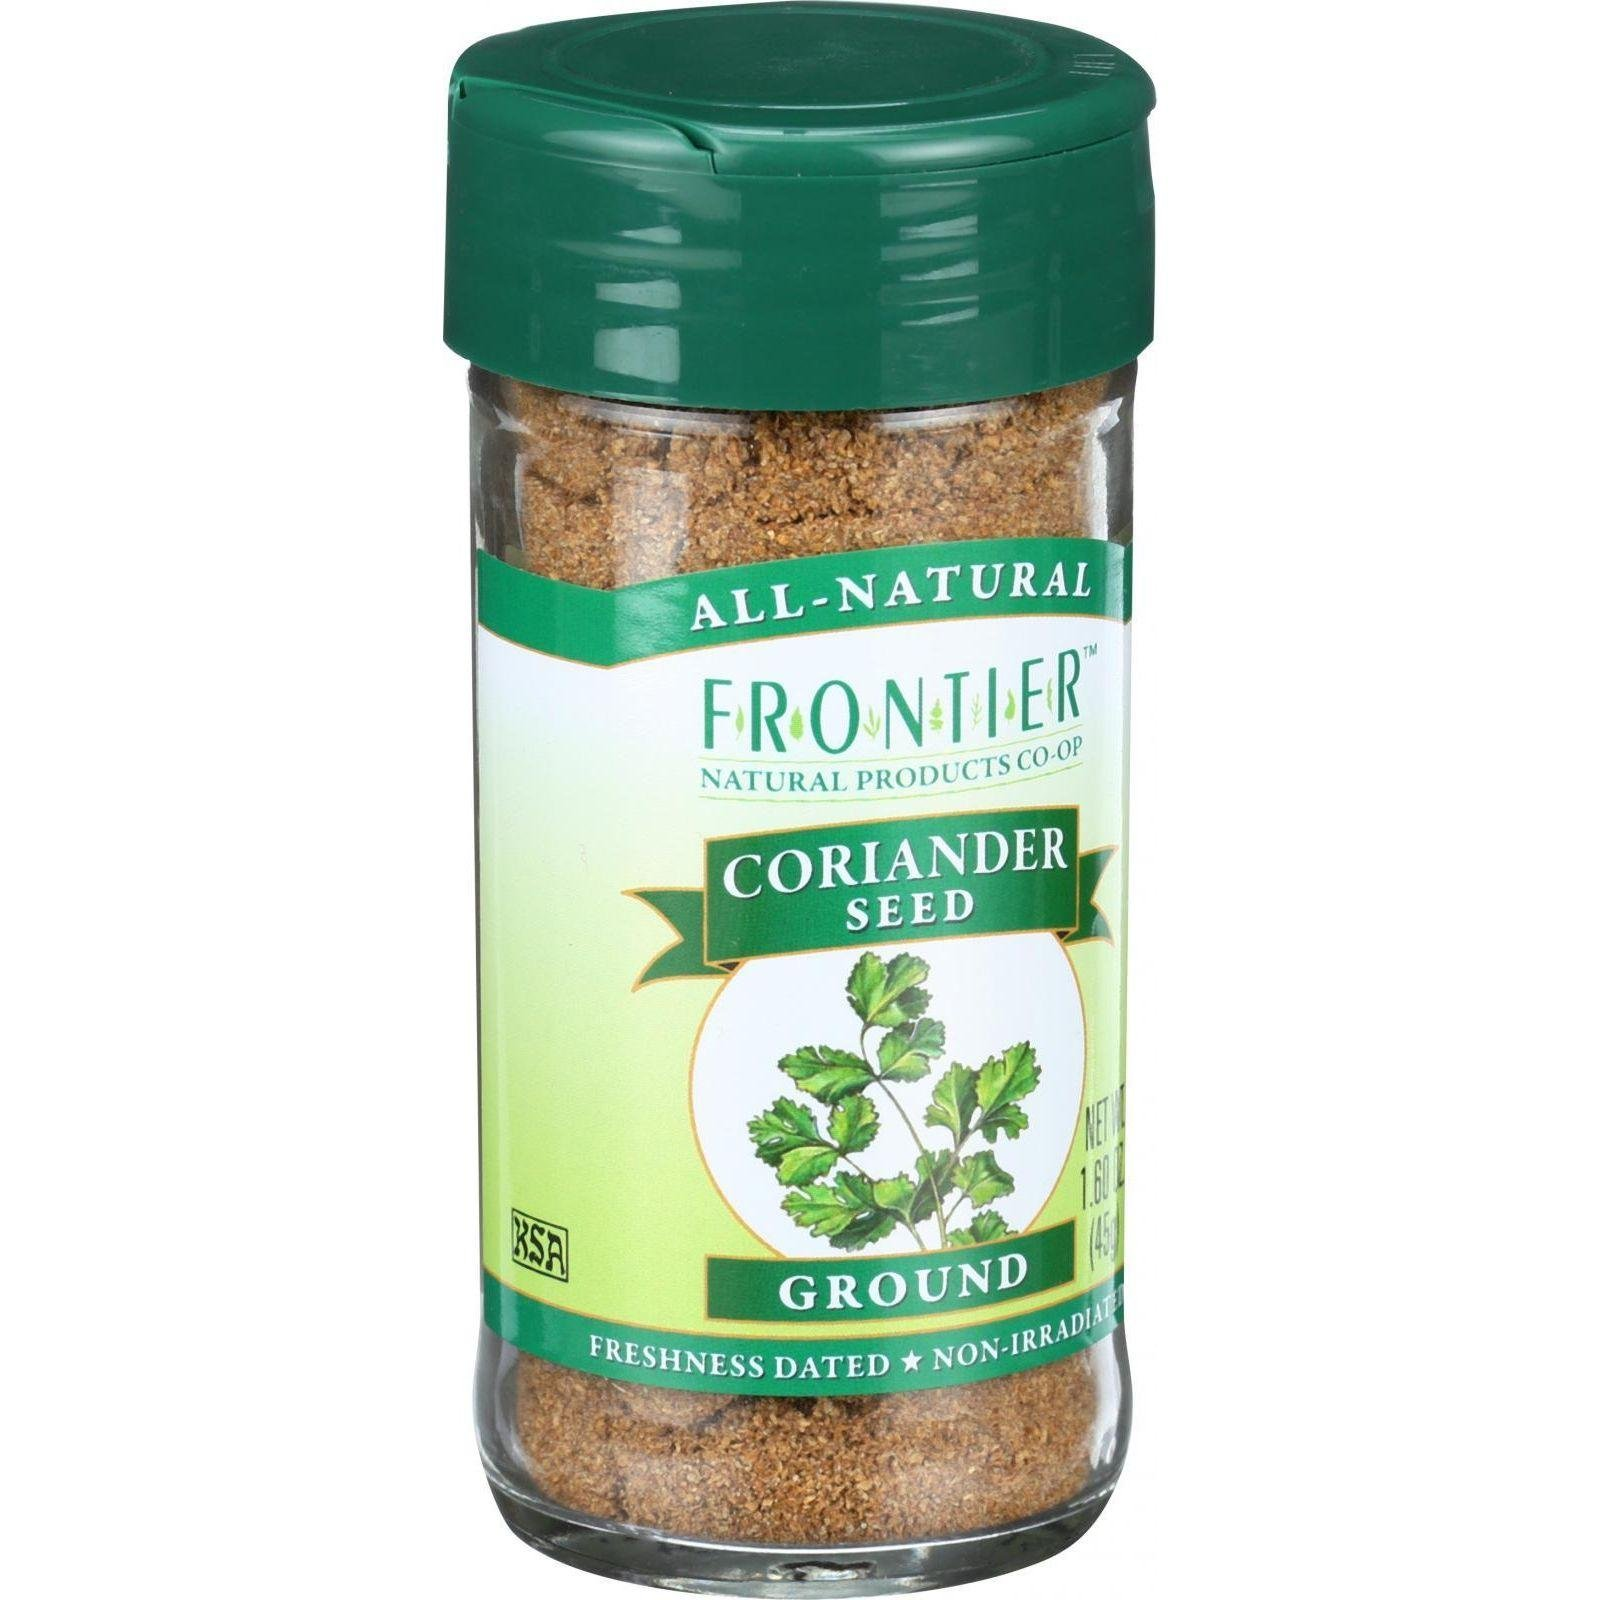 Frontier Coriander Seed Ground, 1.6-Ounce Bottle